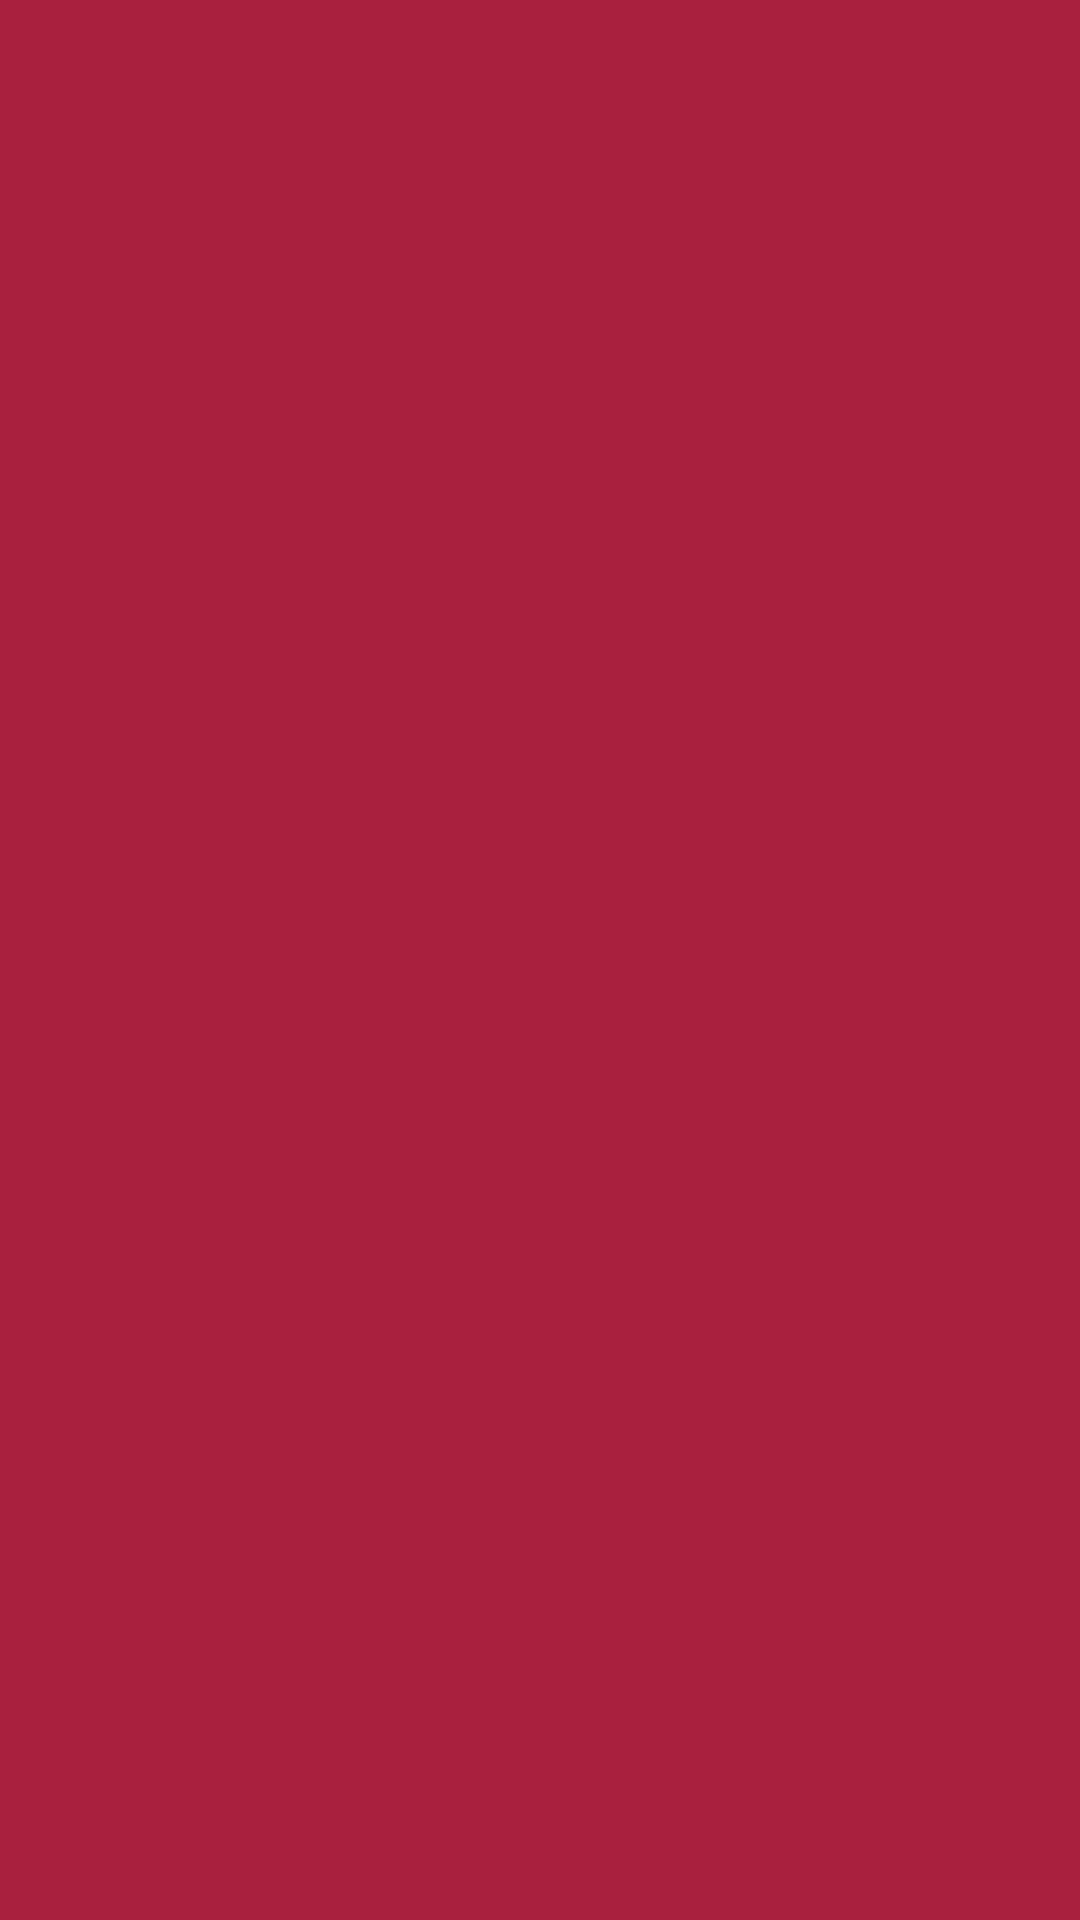 1080x1920 Deep Carmine Solid Color Background